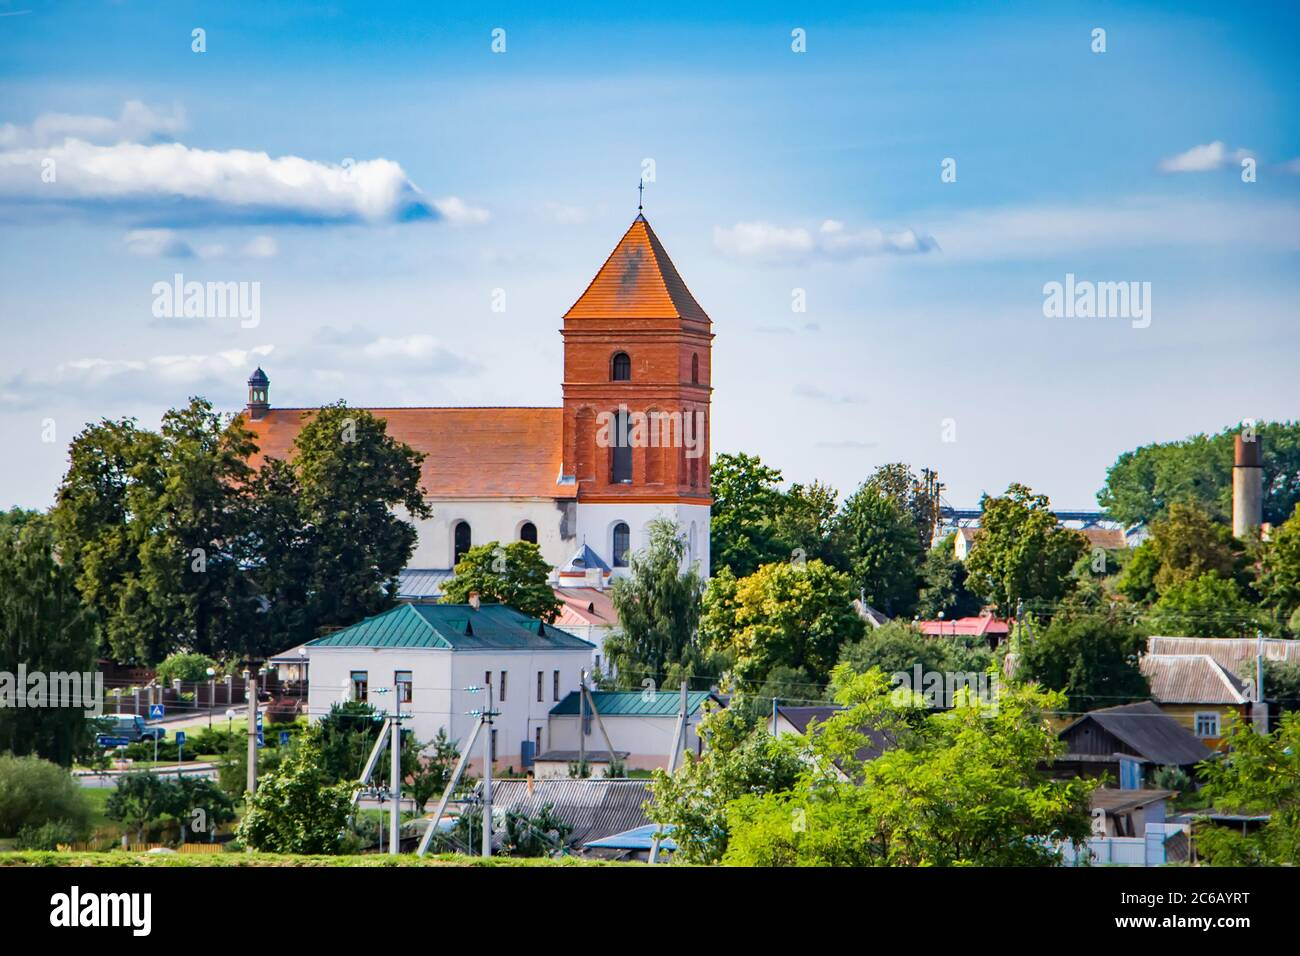 Old medieval building against the blue sky. Ancient architecture. House with red roof tiles. Stock Photo